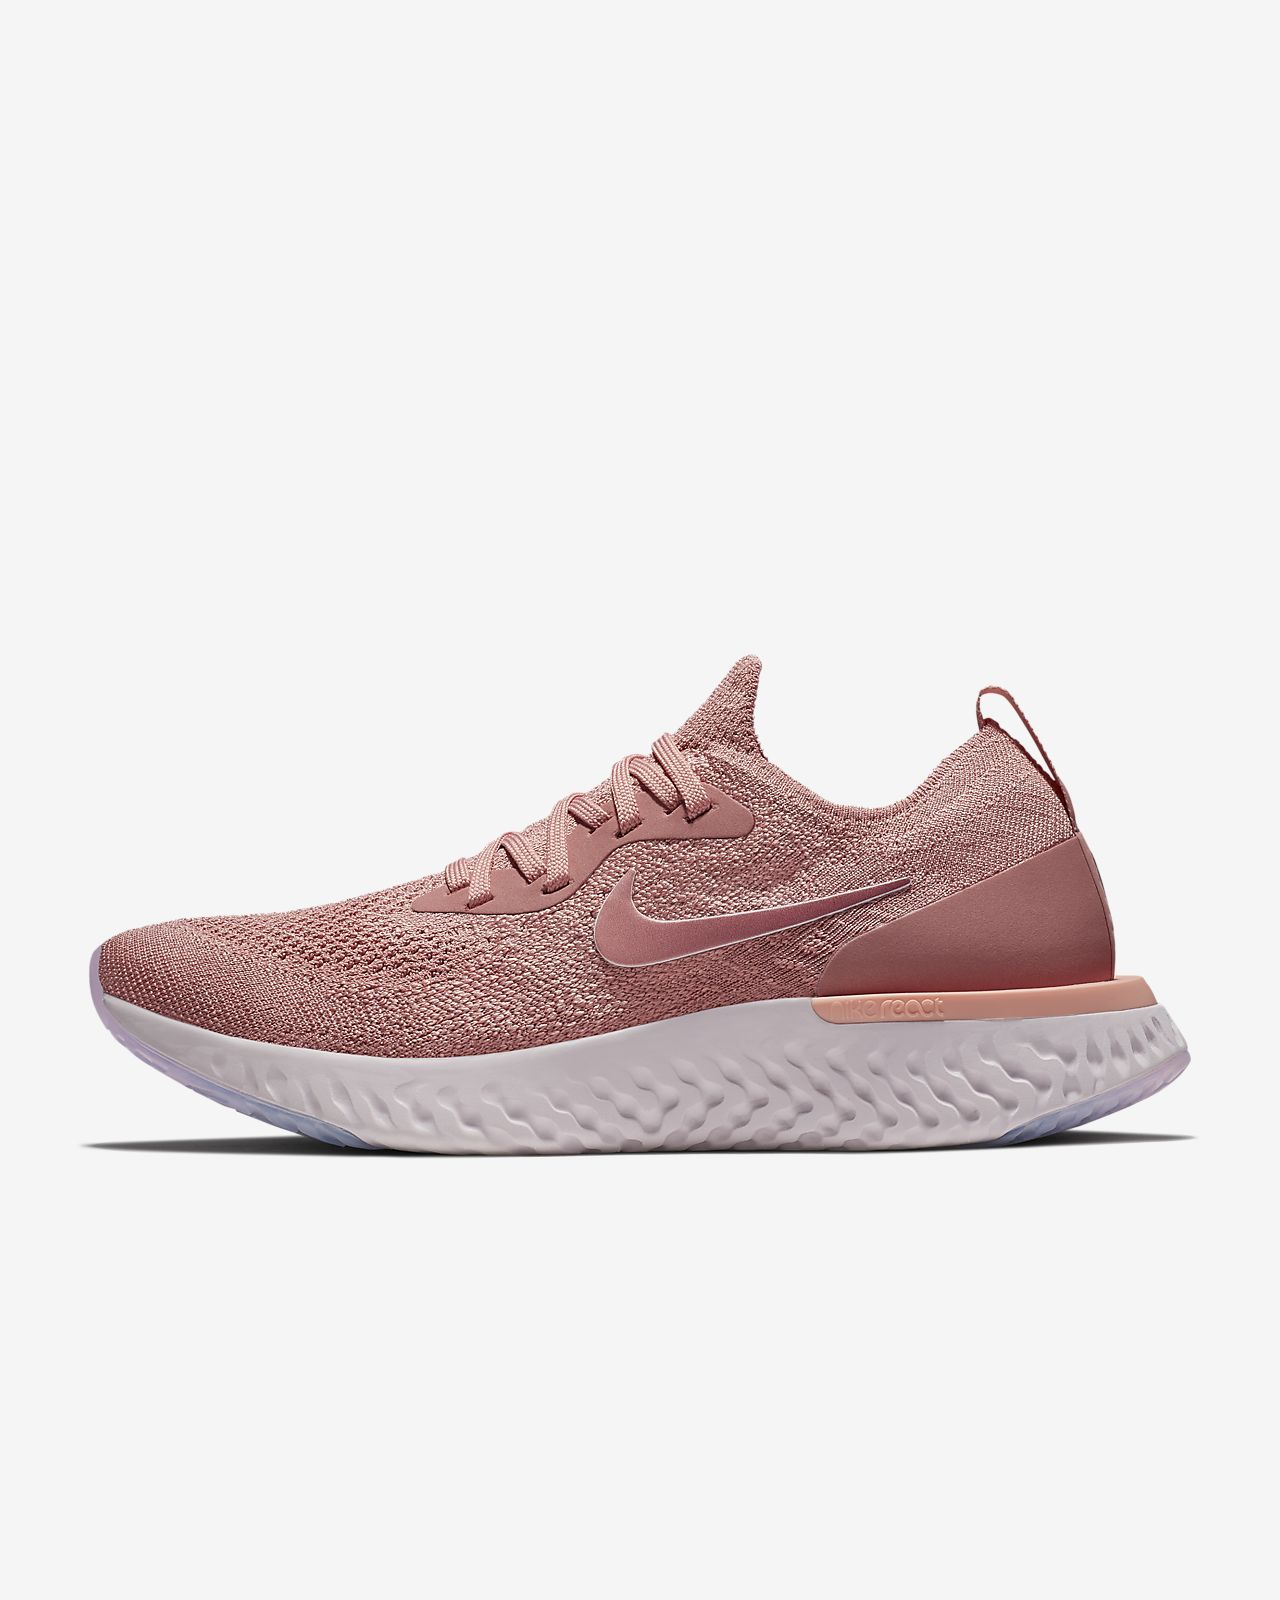 62afc66b66e6a Nike Epic React Flyknit 1 Women s Running Shoe. Nike.com MY